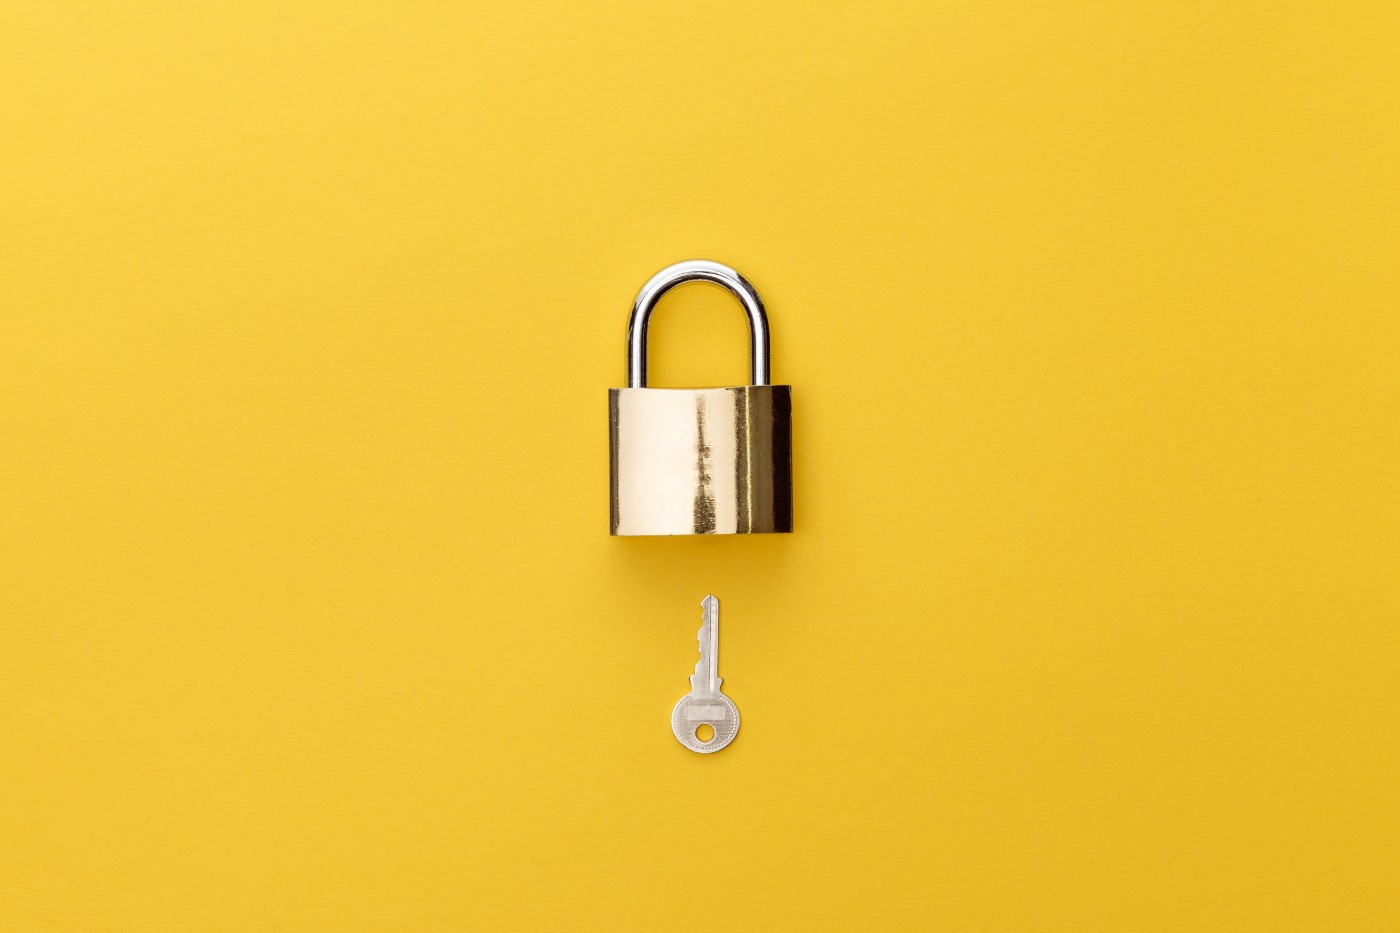 https://tickertapecdn.tdameritrade.com/assets/images/pages/md/Lock and key: initial public offering and lockup restrictions